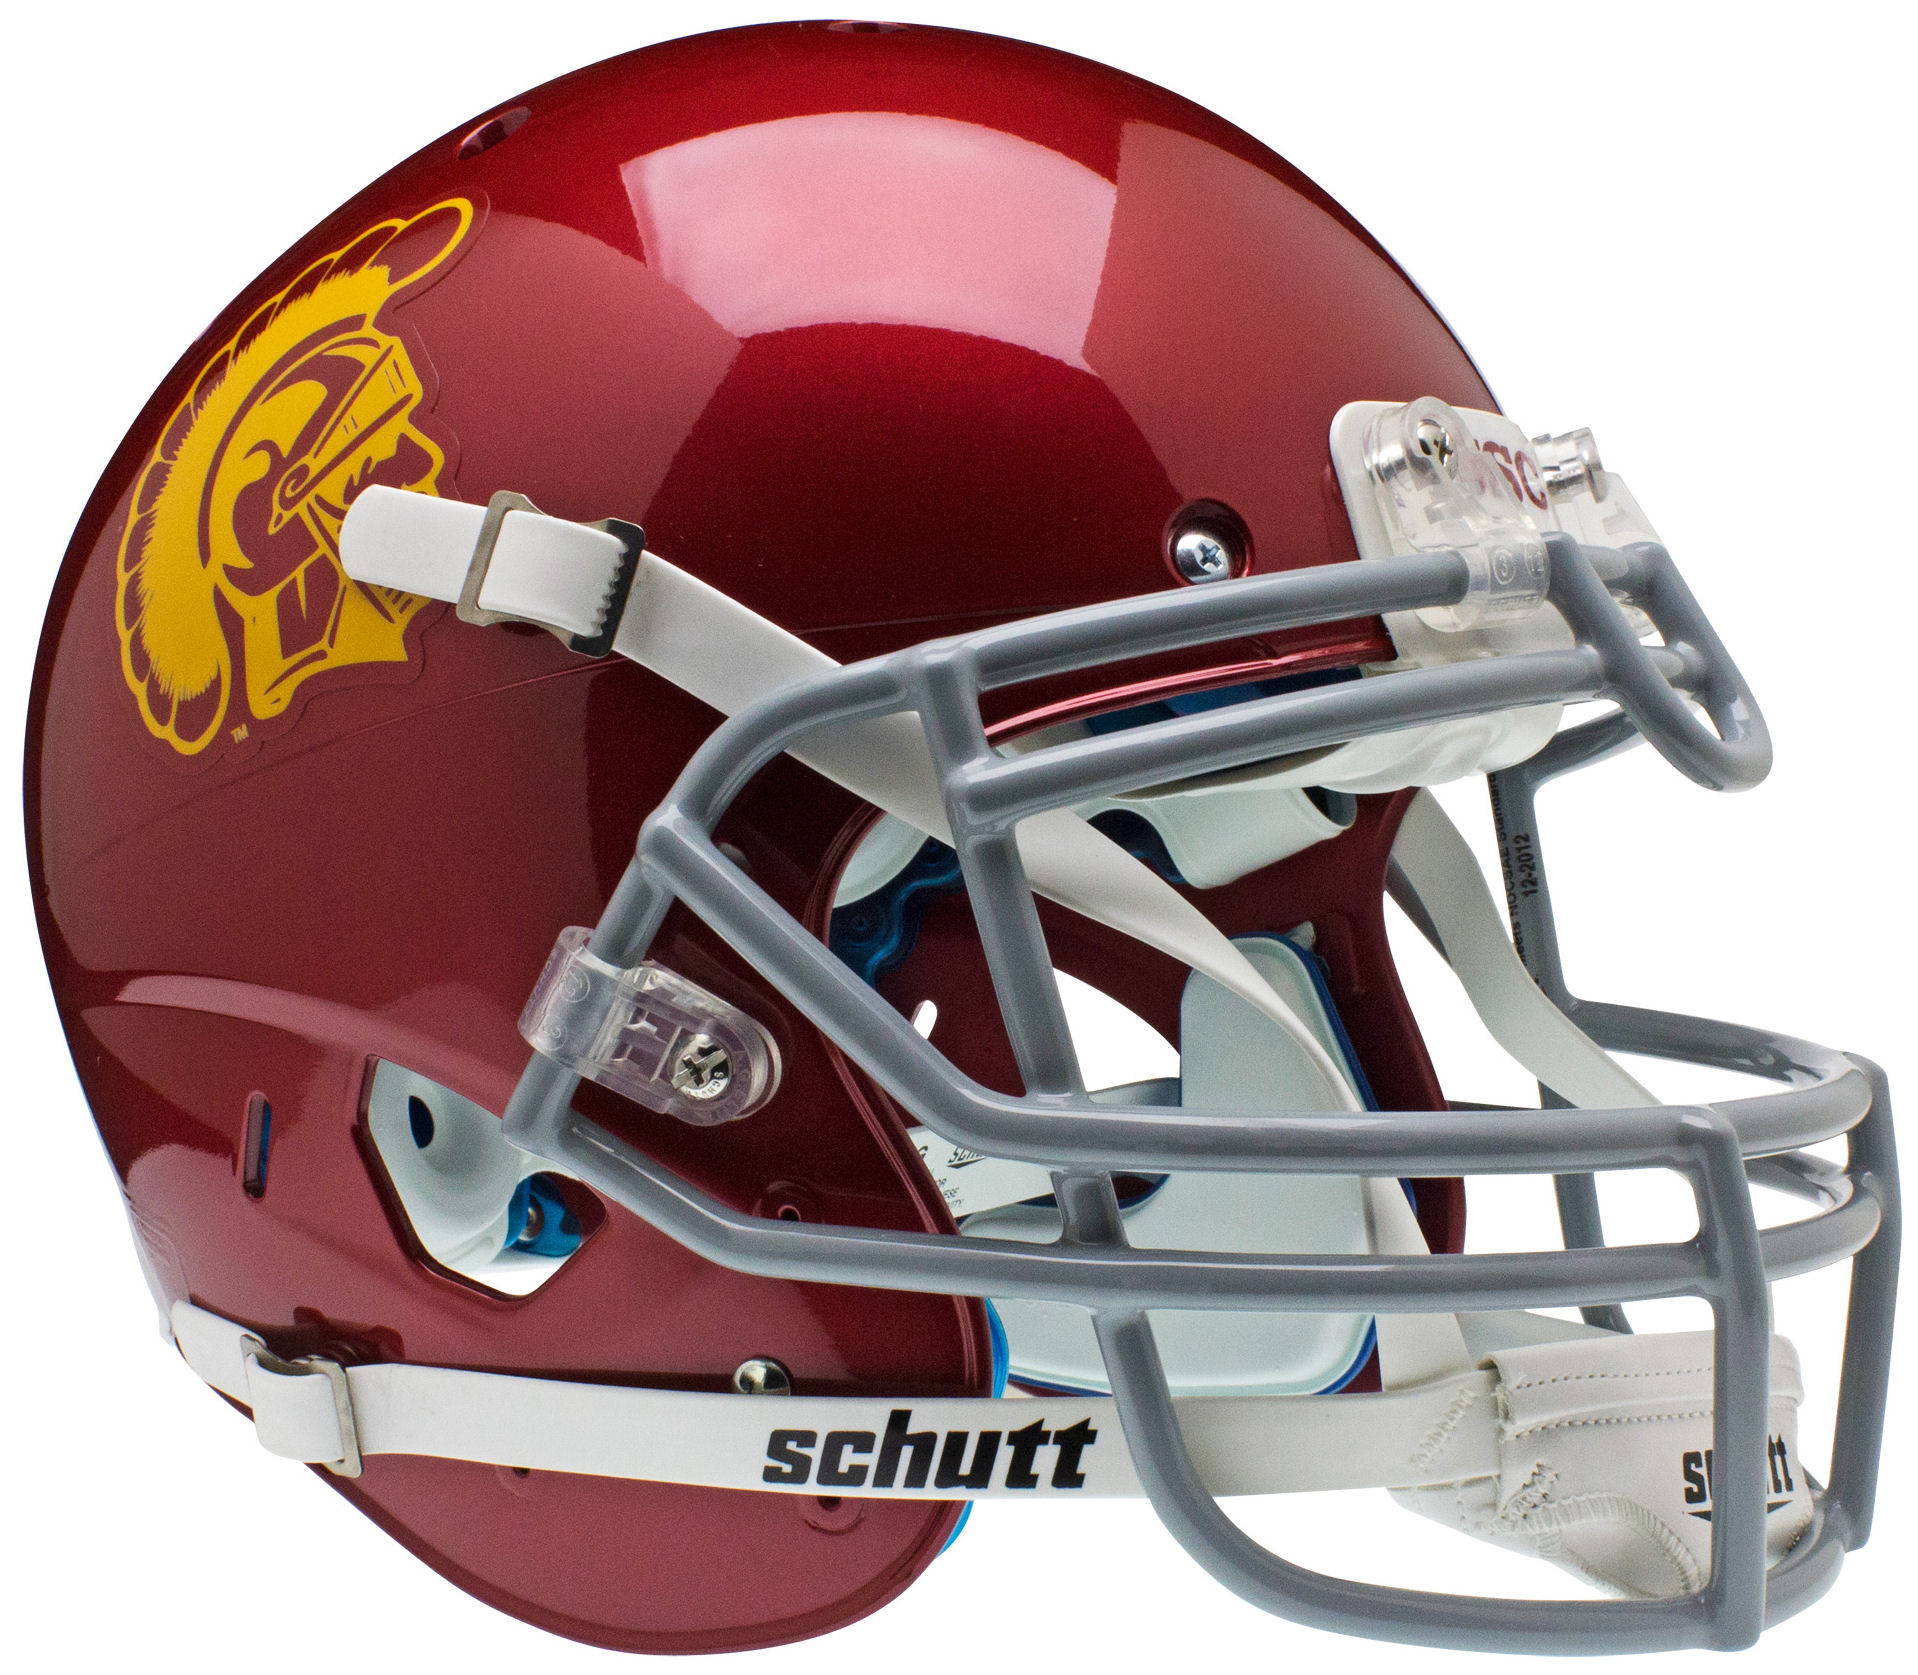 USC Trojans Authentic College XP Football Helmet Schutt